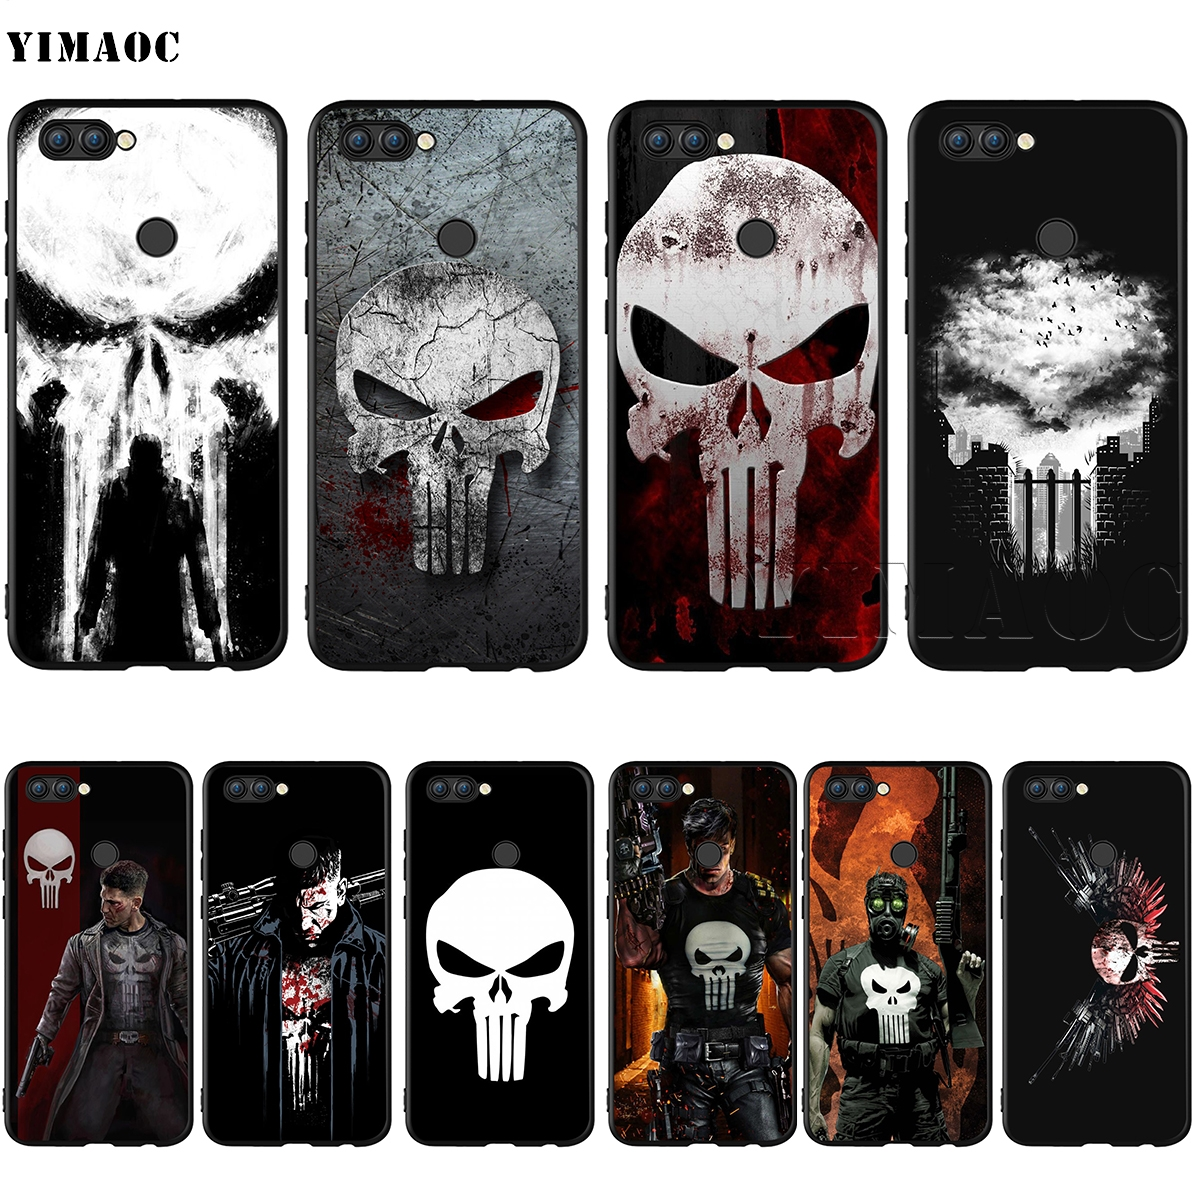 YIMAOC <font><b>Marvel</b></font> The Punisher Silicone Case for <font><b>Huawei</b></font> Mate 10 P8 P9 <font><b>P10</b></font> P20 <font><b>Lite</b></font> Pro P Y7 Y9 Smart Mini 2017 2018 image